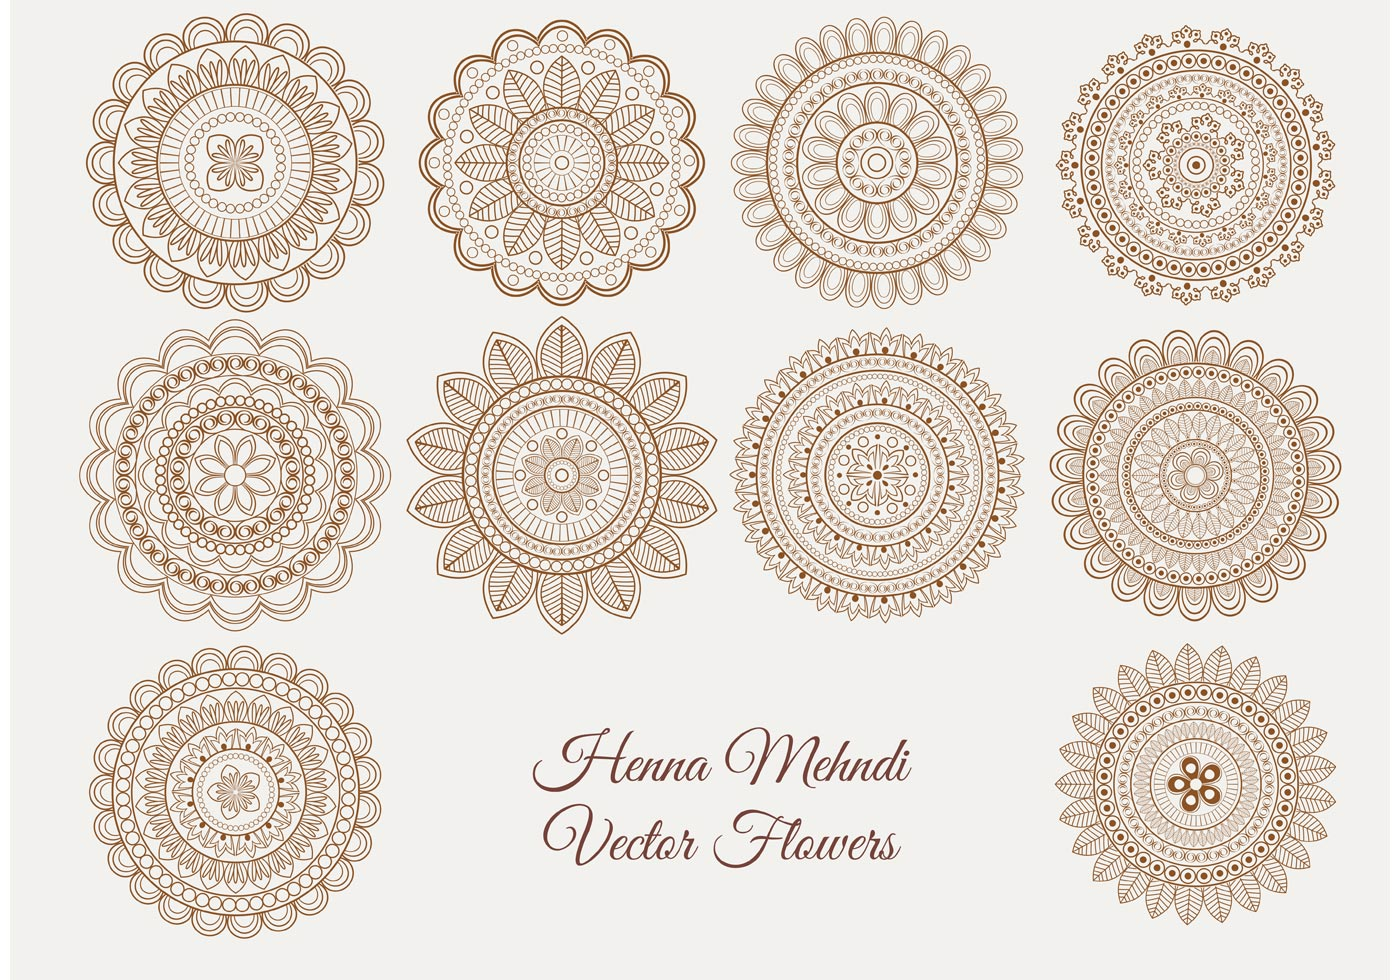 Henna Mehndi Vector Free Download : Henna mehndi vector flowers download free art stock graphics images